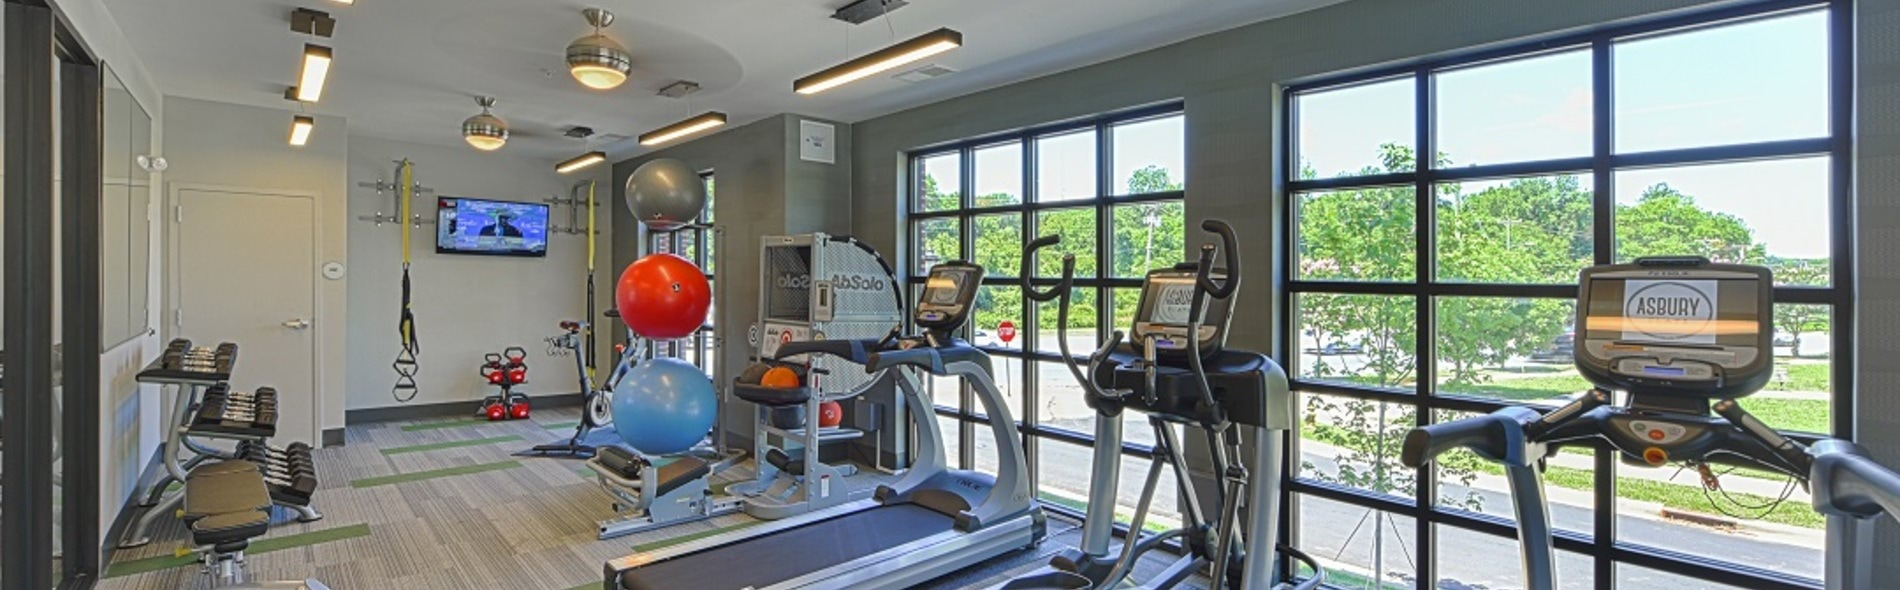 Fitness Center-Asbury Flats Apartments